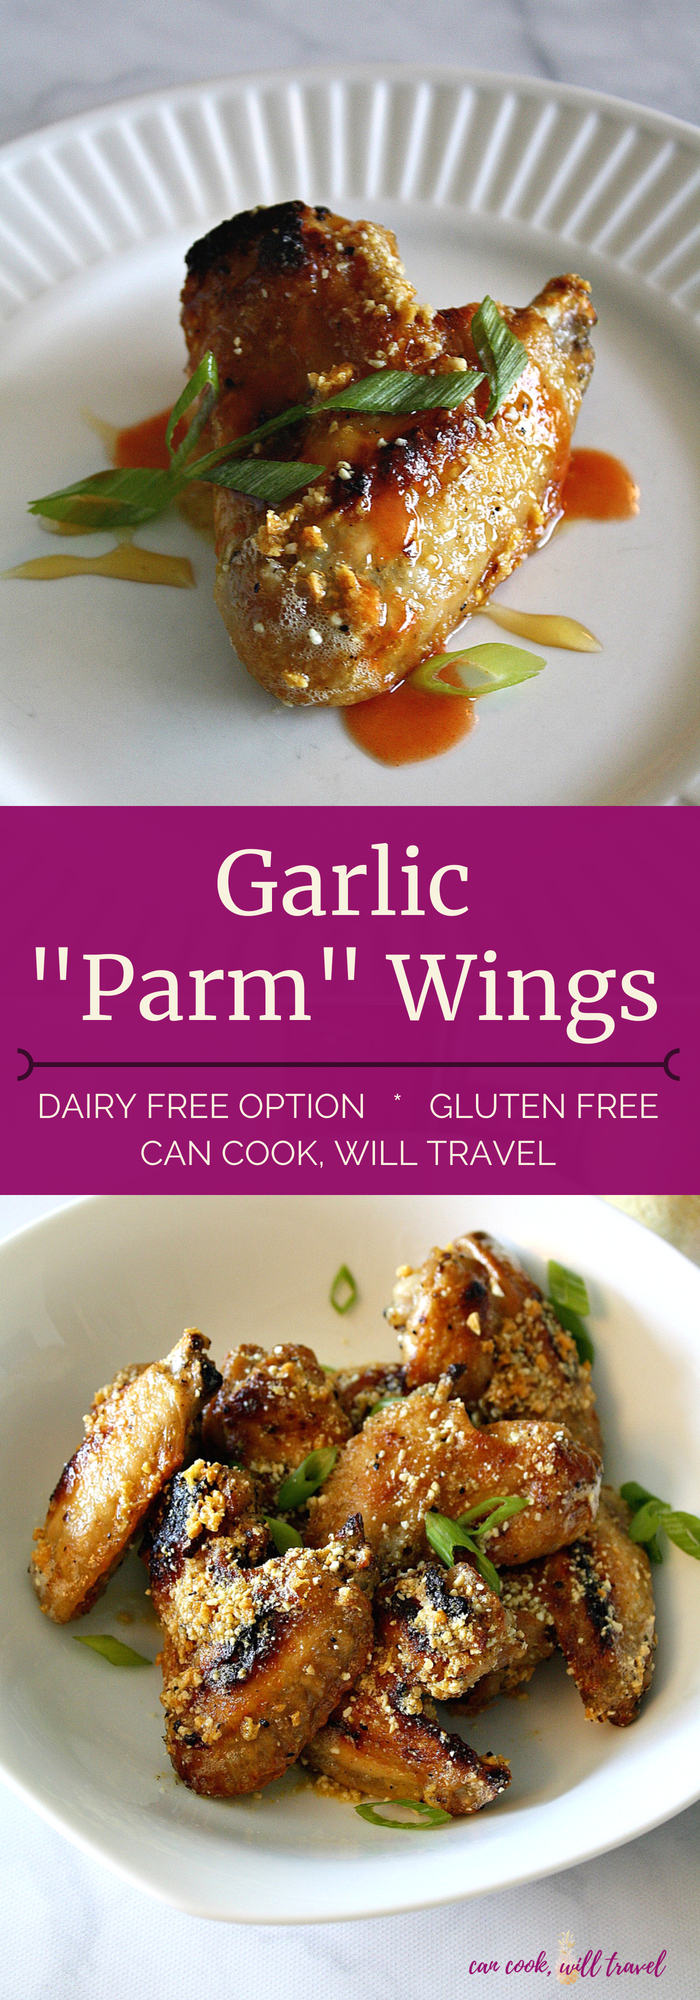 Garlic Parm Wings_Collage1